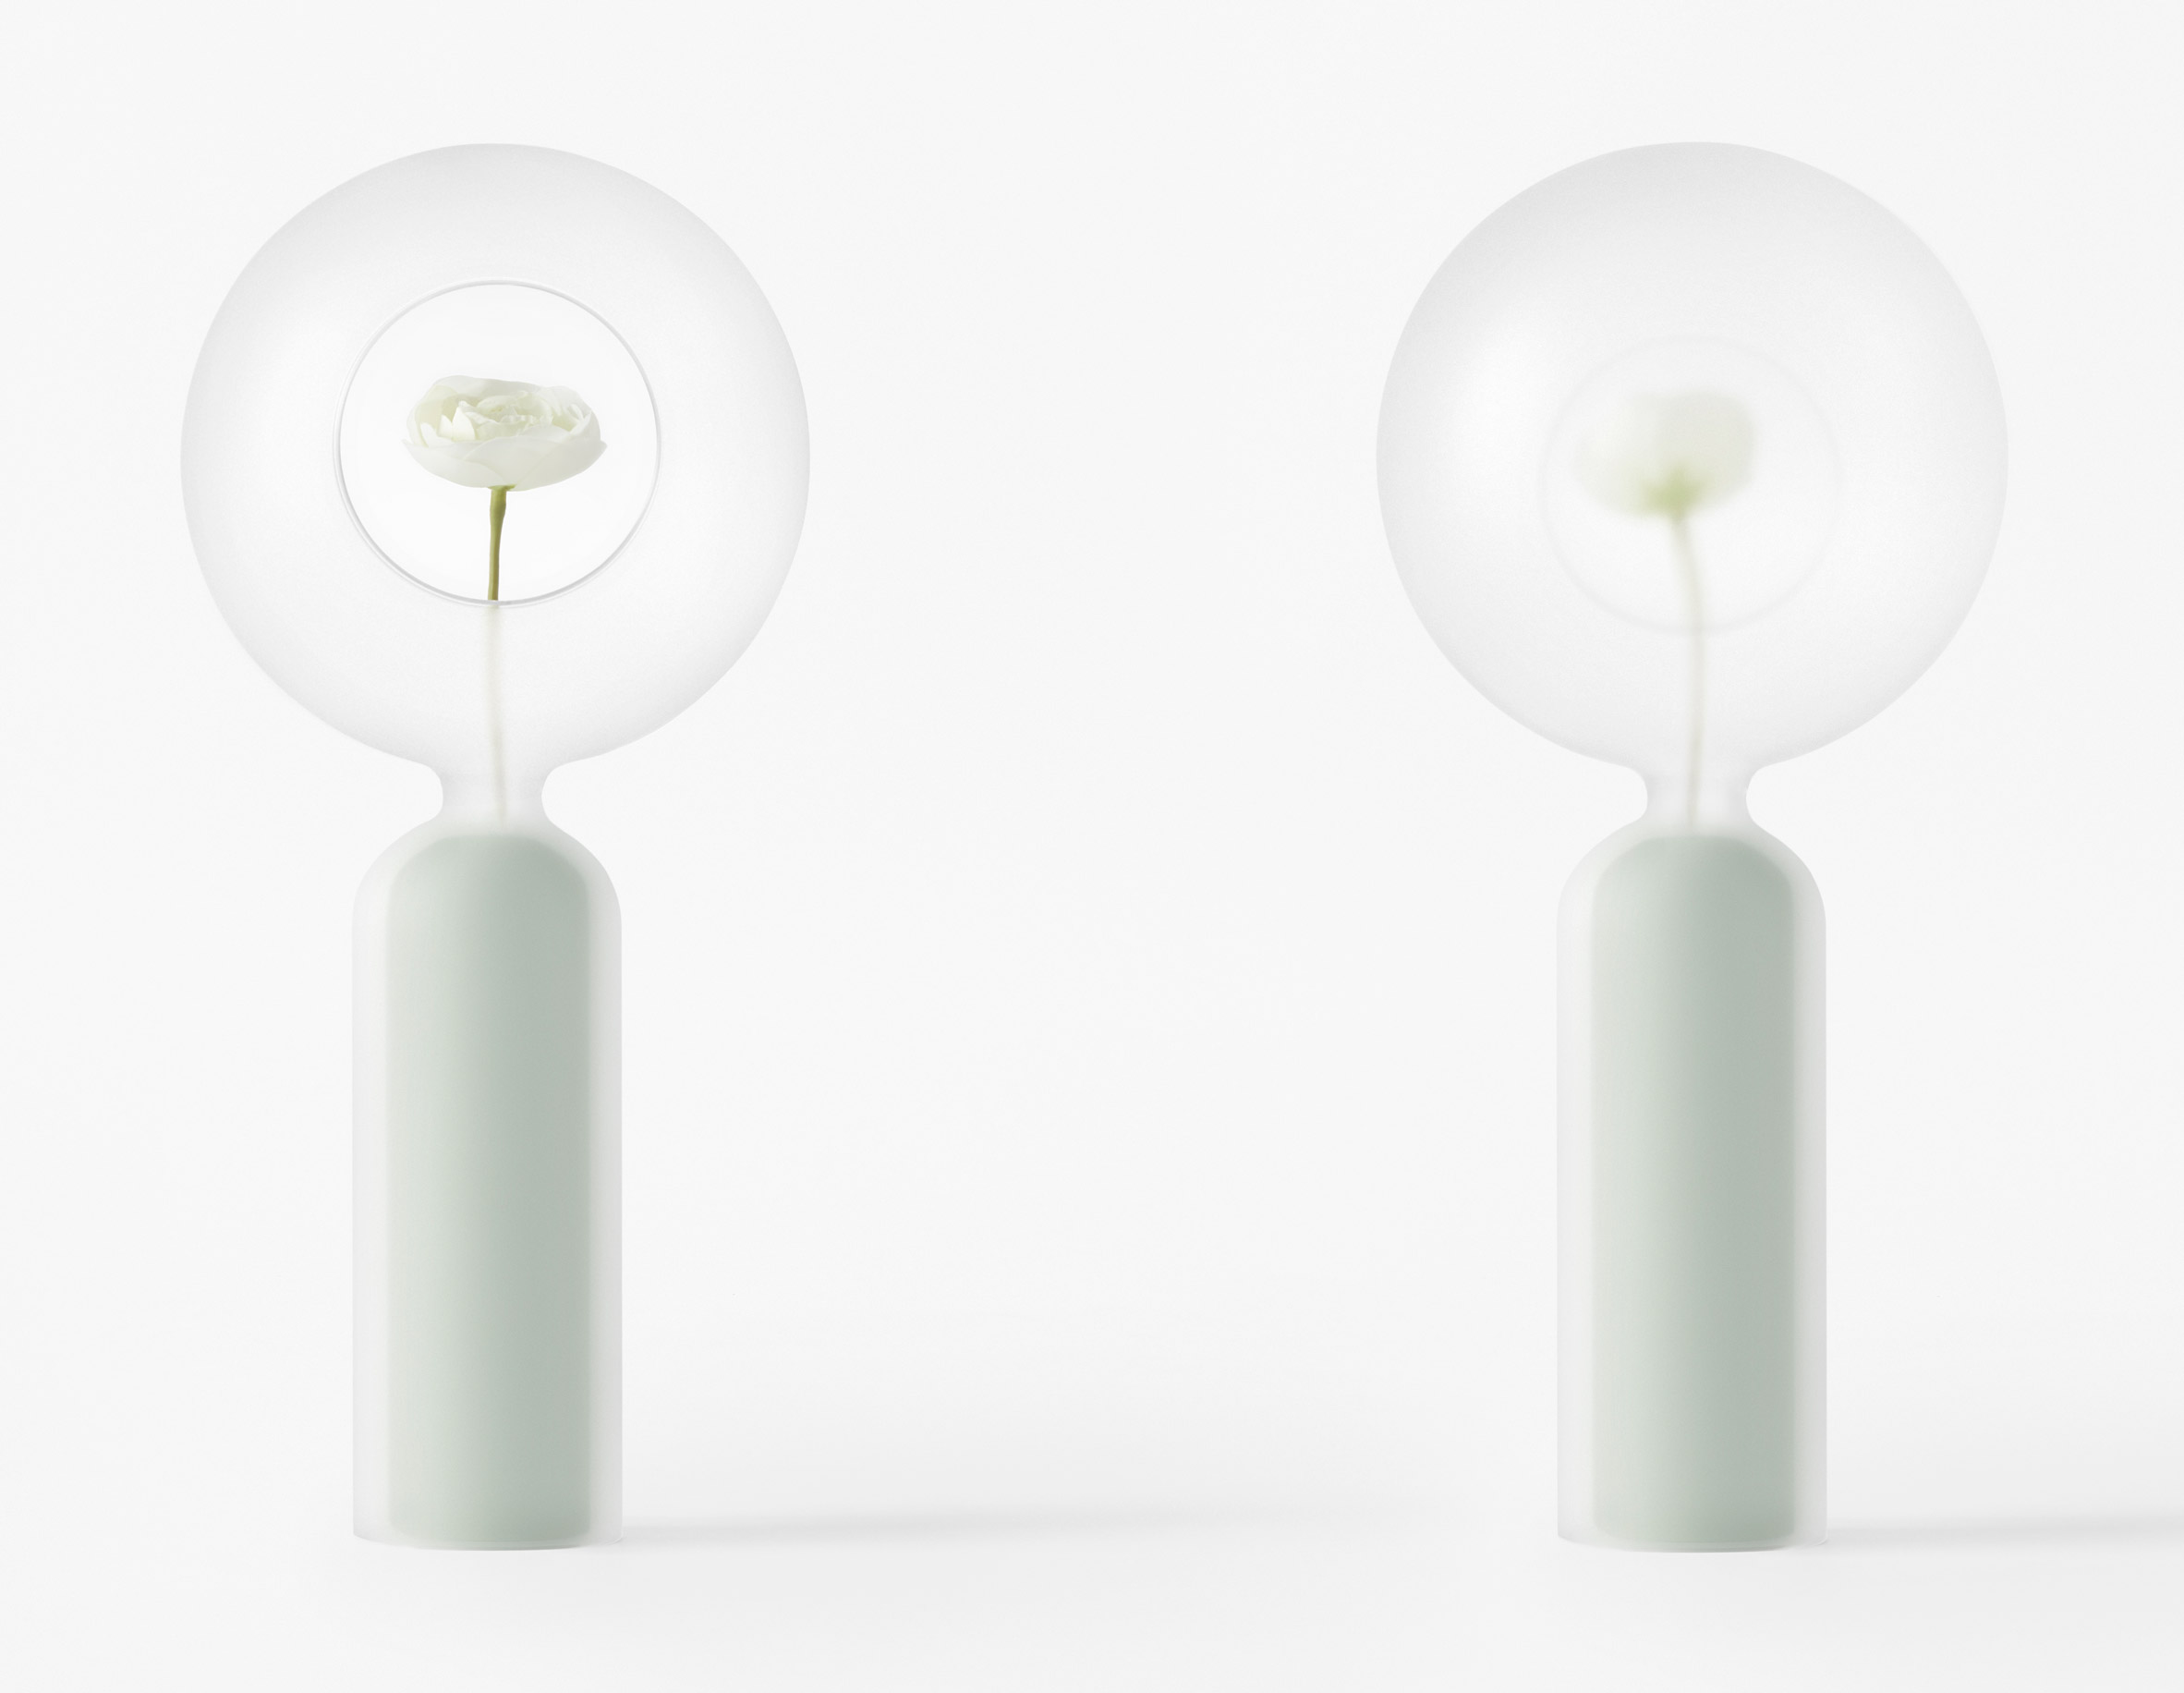 Nendo designs space helmet-shaped vessels and cascading tables for Zens